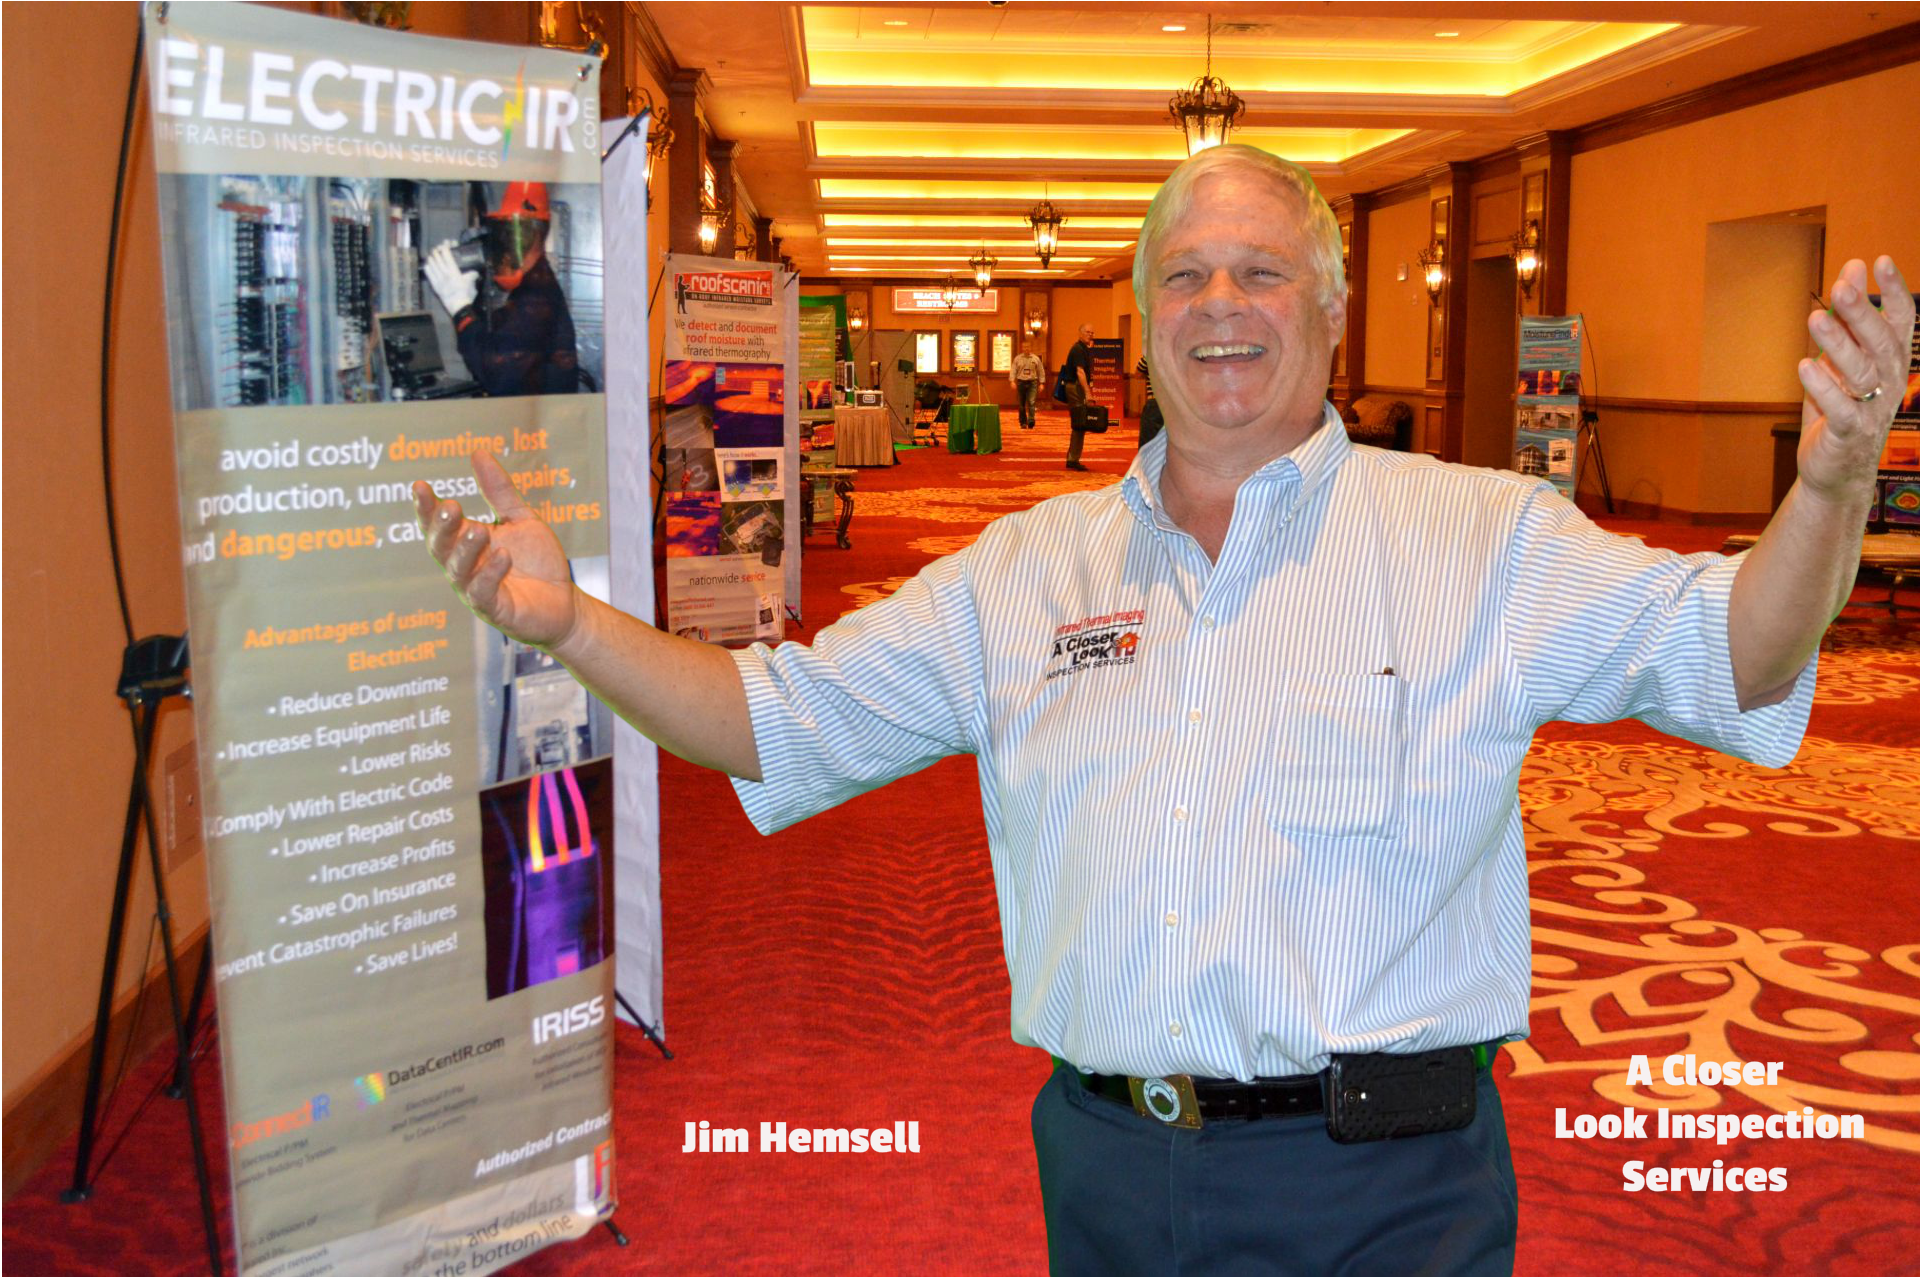 TIC2015 jim hemsell a closer look inspection services